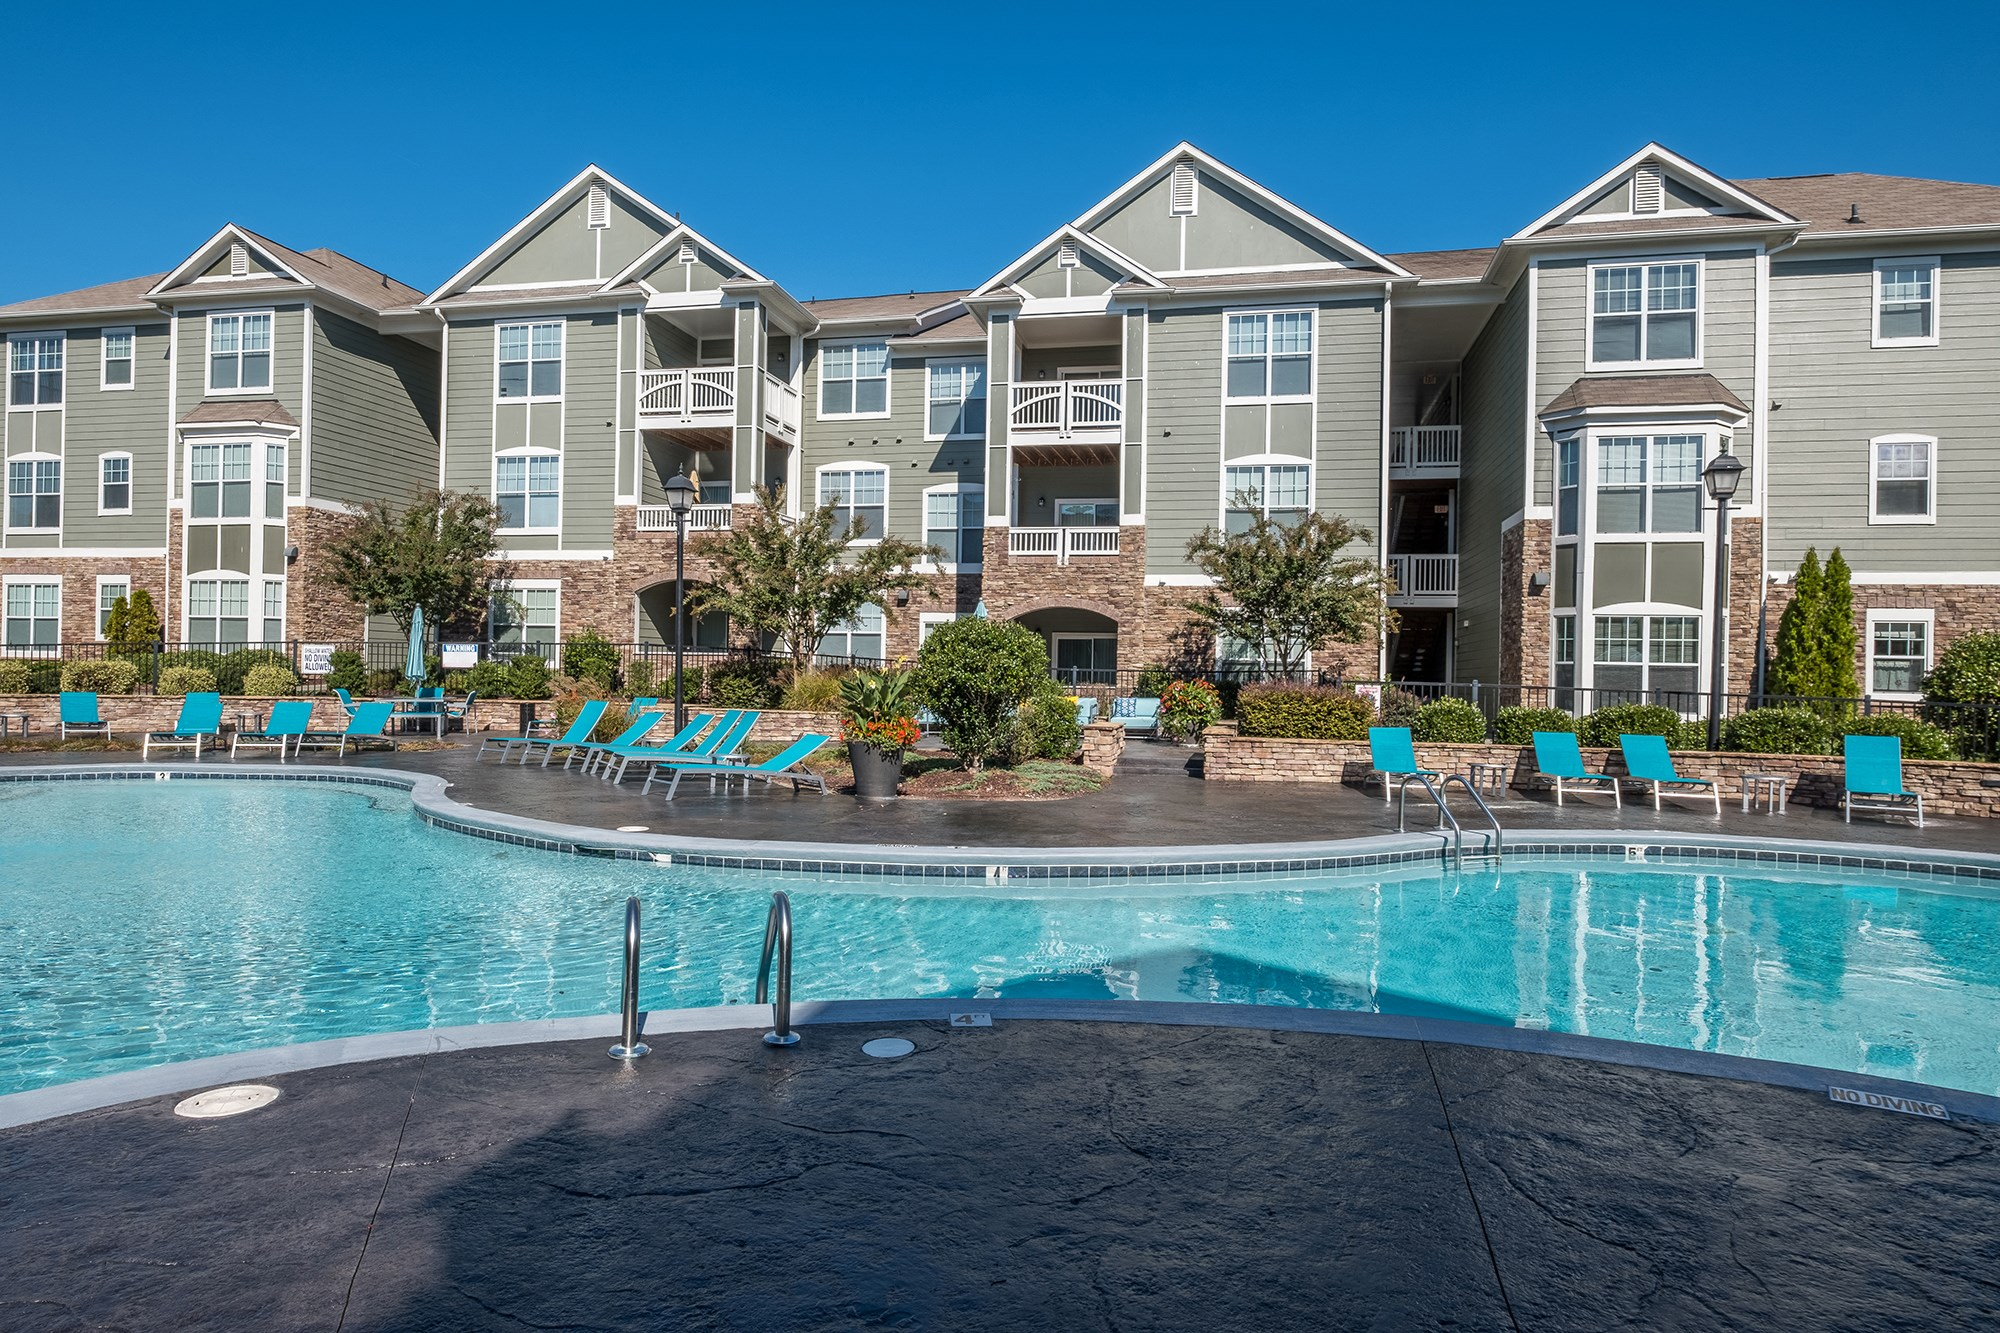 Swimming Pool at View at Legacy Oaks Apartments in Knightdale, NC